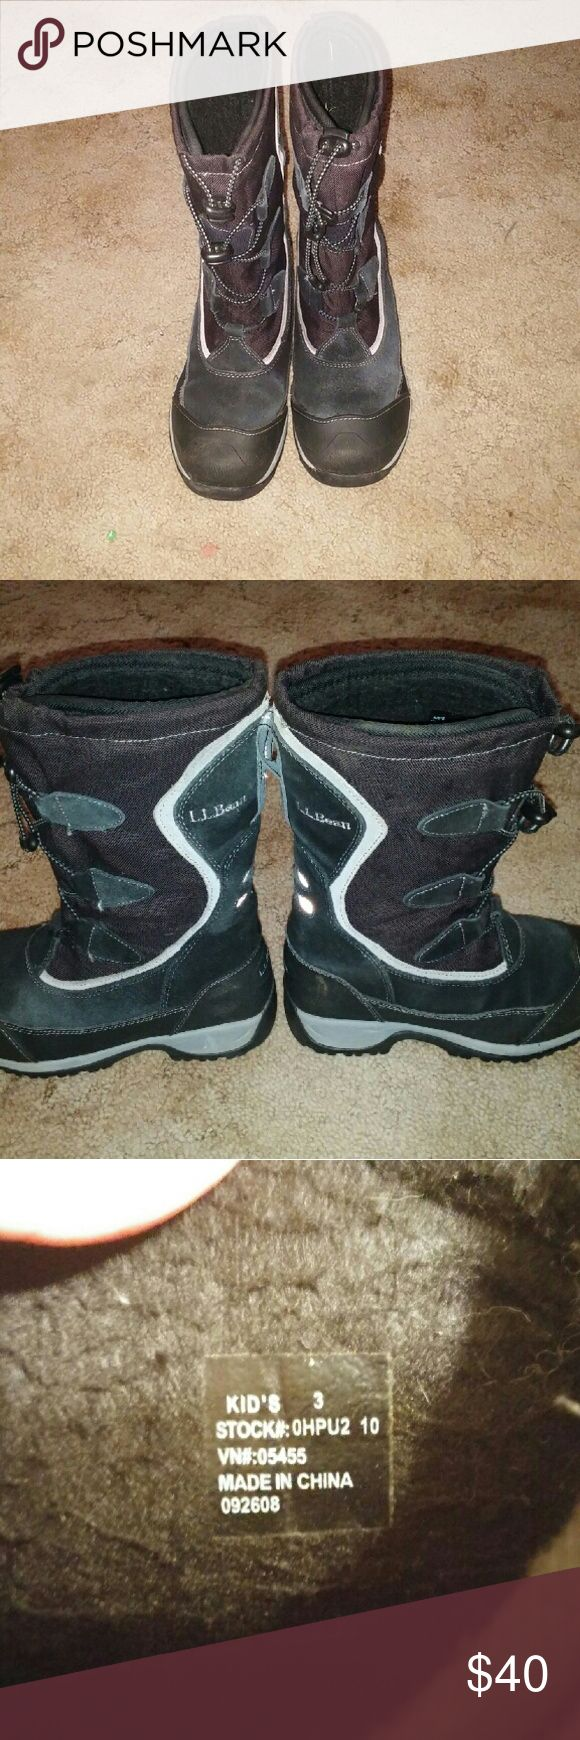 LL Bean Kids Winter Boots Genuine L.L.Bean kids winter boots. Size 3. Was worn by my son for one season.  Normal wear and tear but still in great shape. LL Bean Shoes Rain & Snow Boots